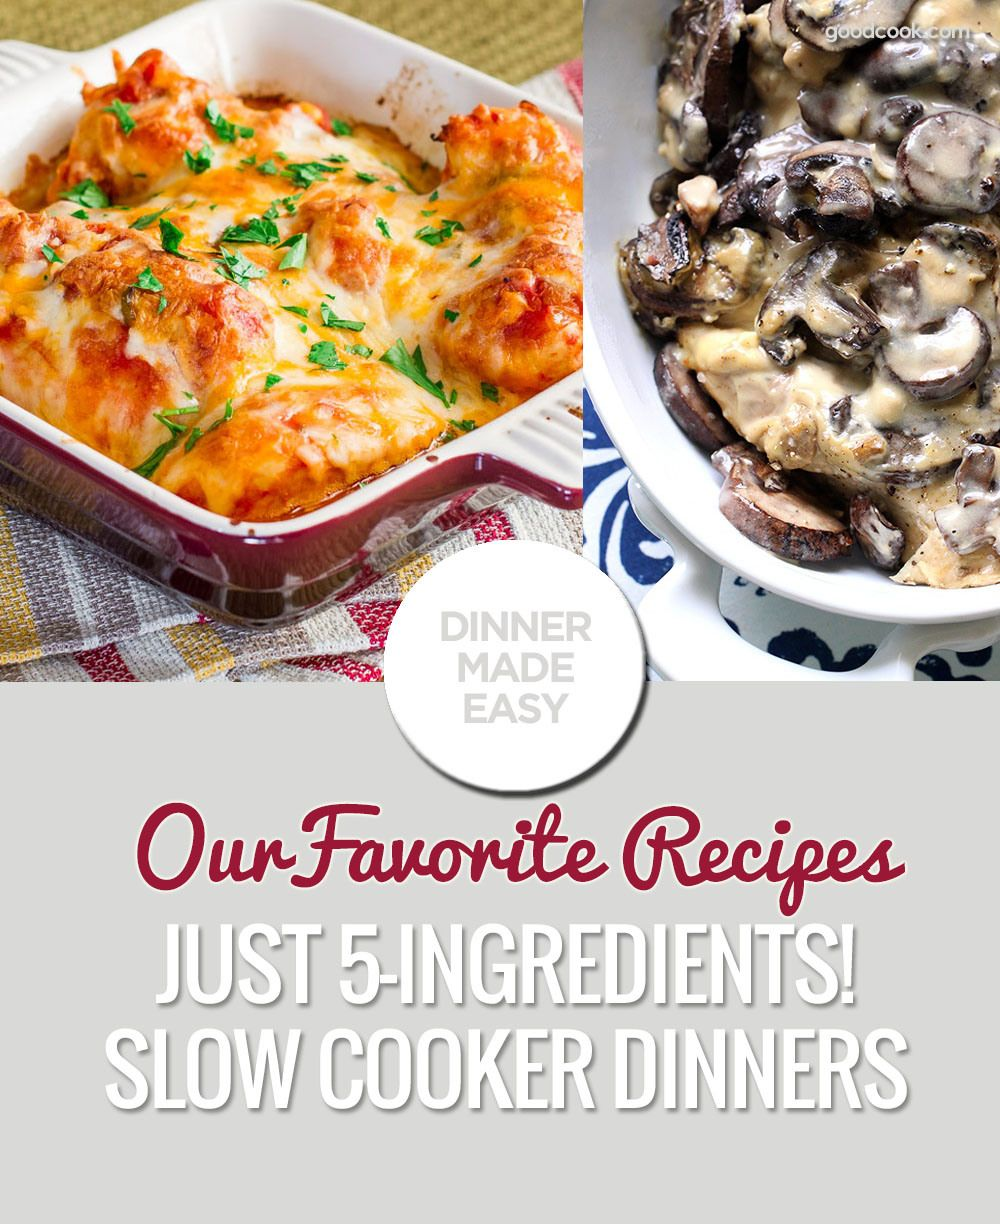 7 Slow Cooker Dinners with 5-Ingredients or Less - GoodCook #AskGoodCook